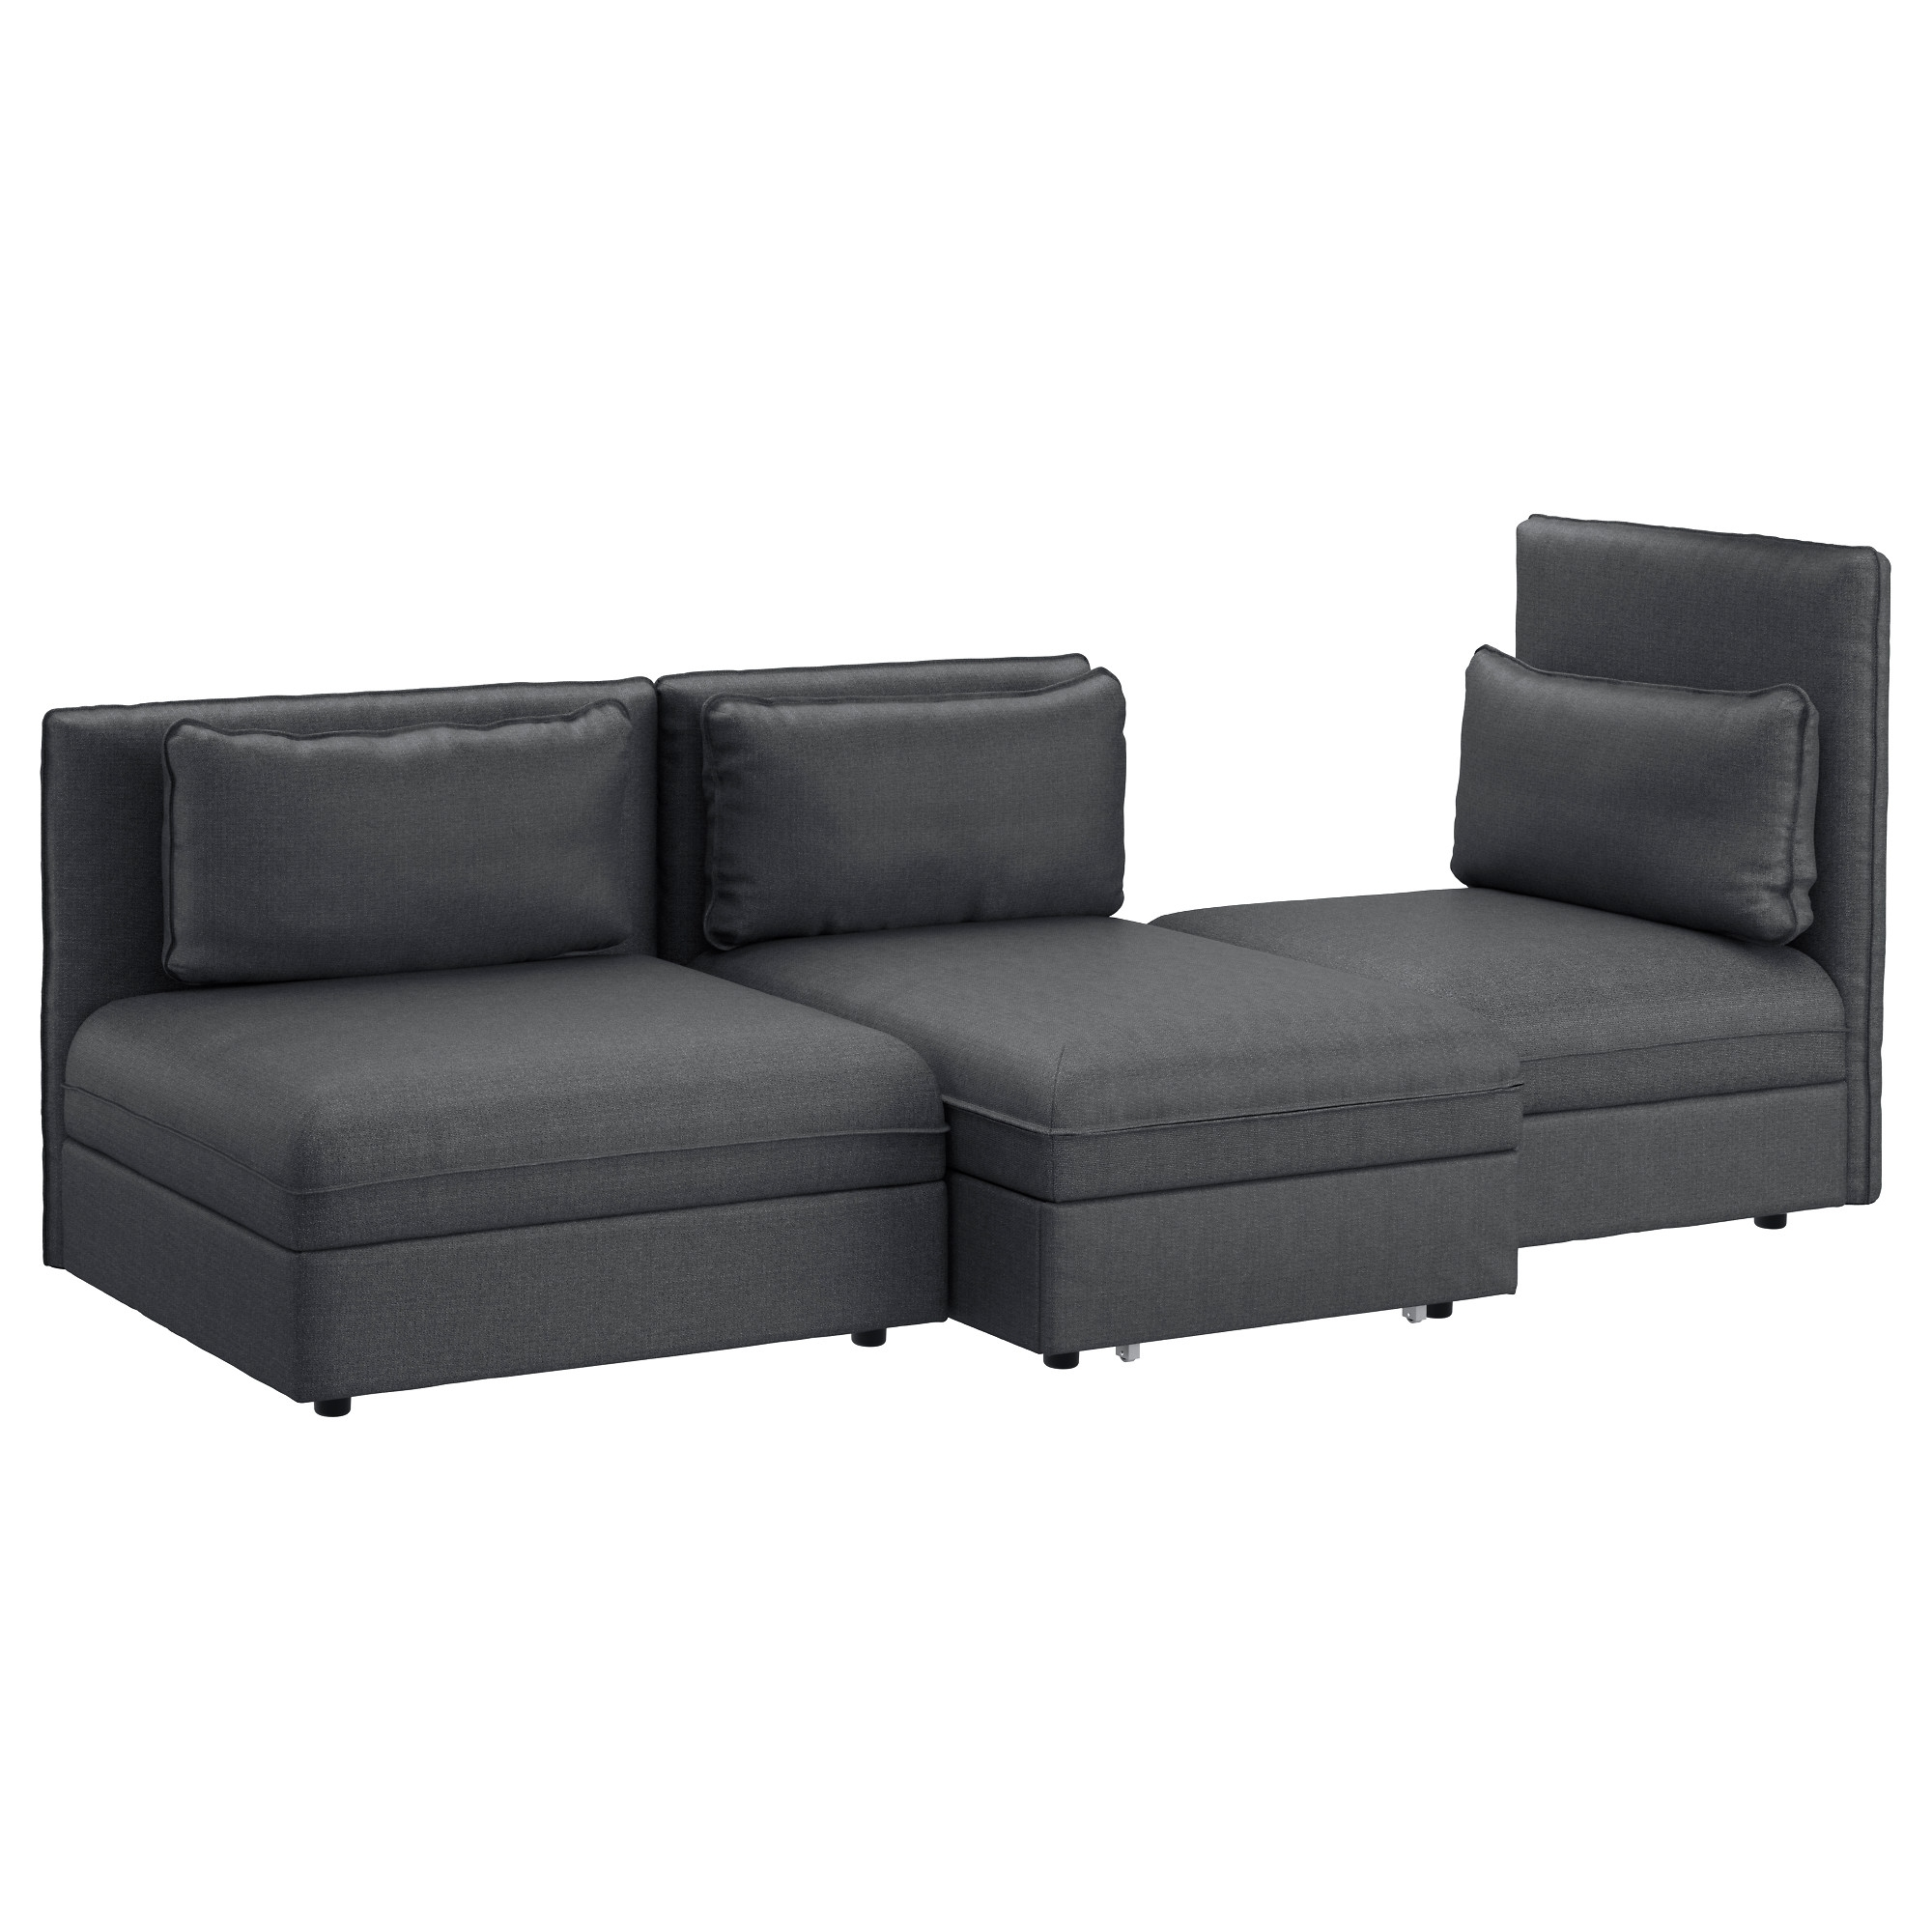 Vallentuna Sleeper Sectional, 3 Seat – Hillared Dark Gray – Ikea Inside Latest Ikea Sectional Sleeper Sofas (View 14 of 15)